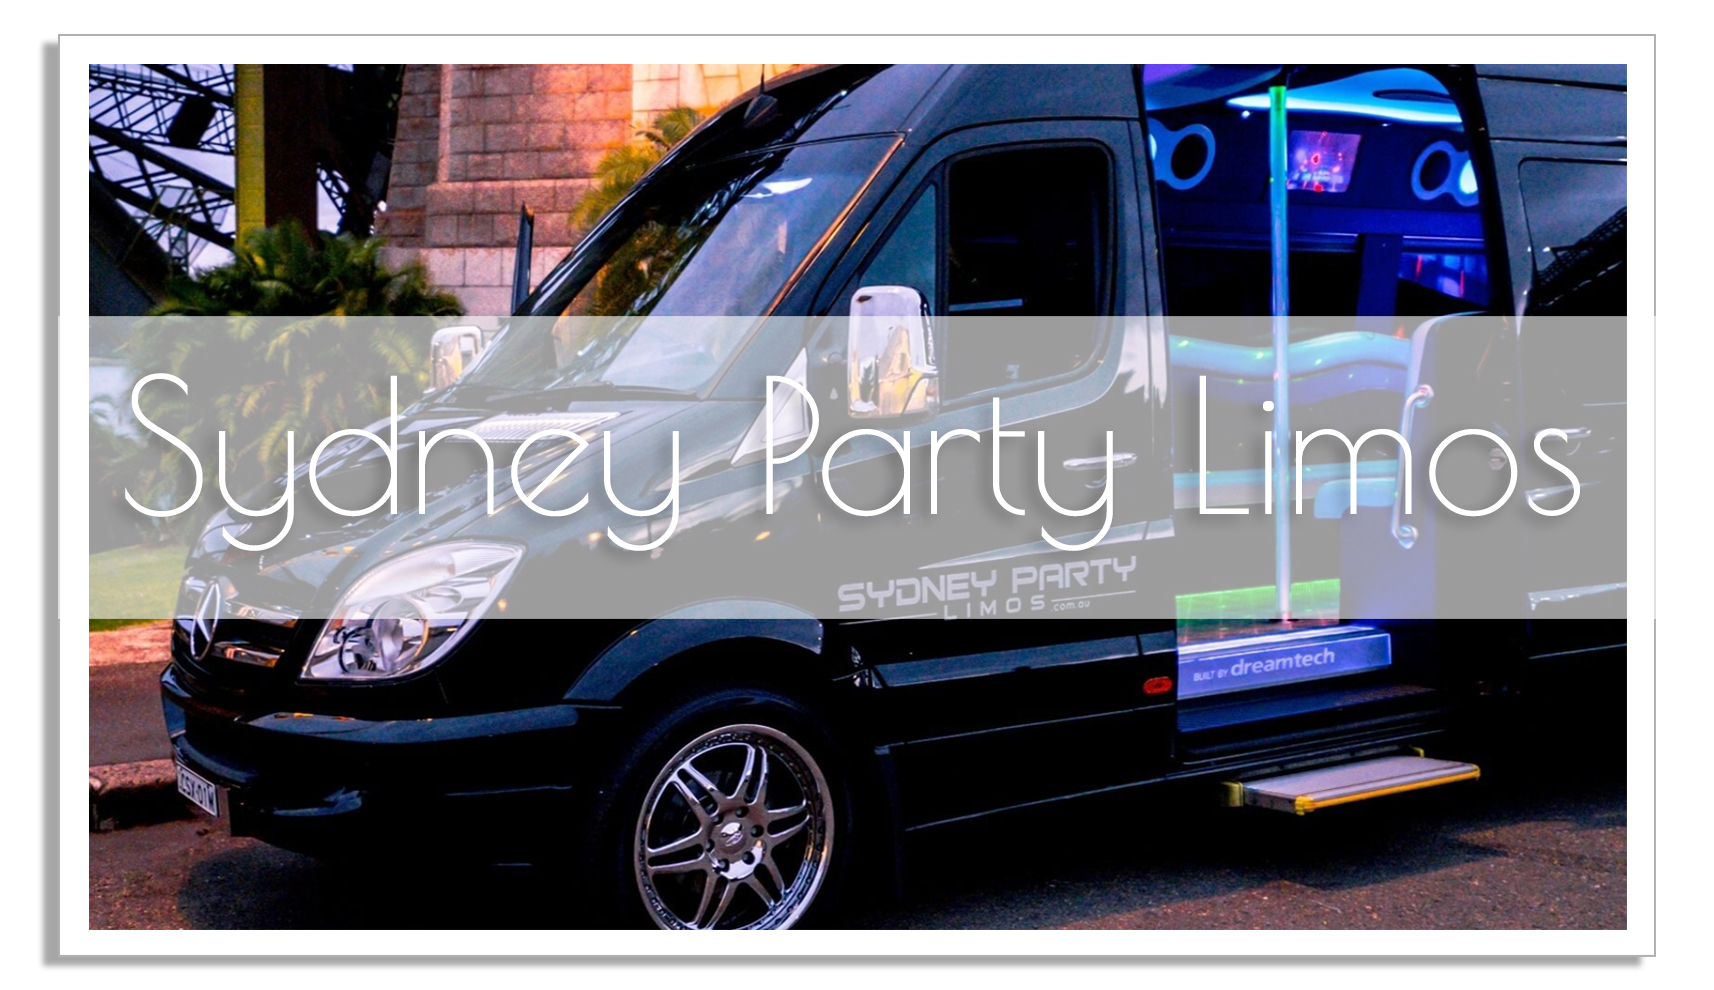 Hens Party Transport